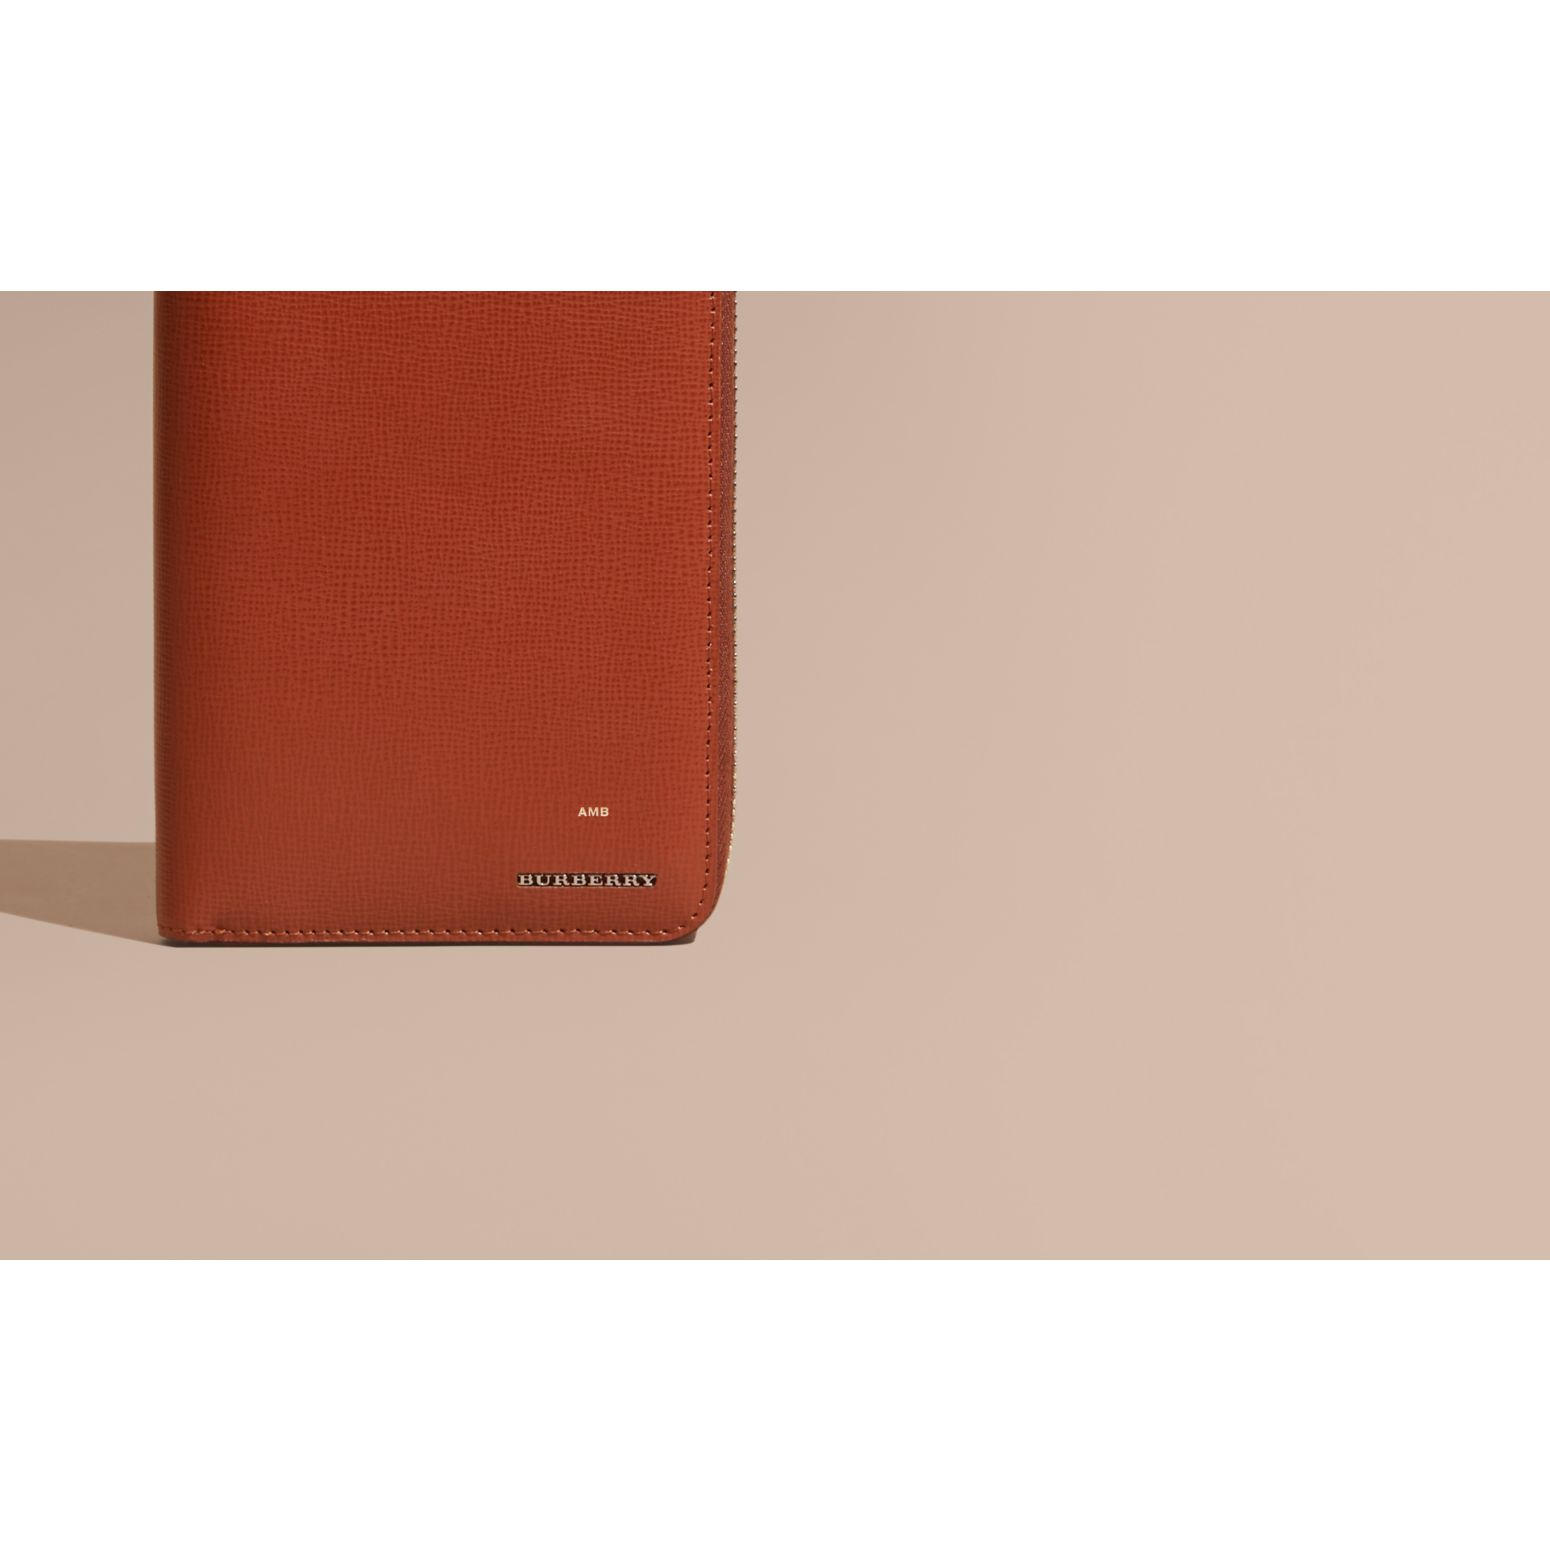 Burnt sienna London Leather Ziparound Wallet Burnt Sienna - gallery image 2